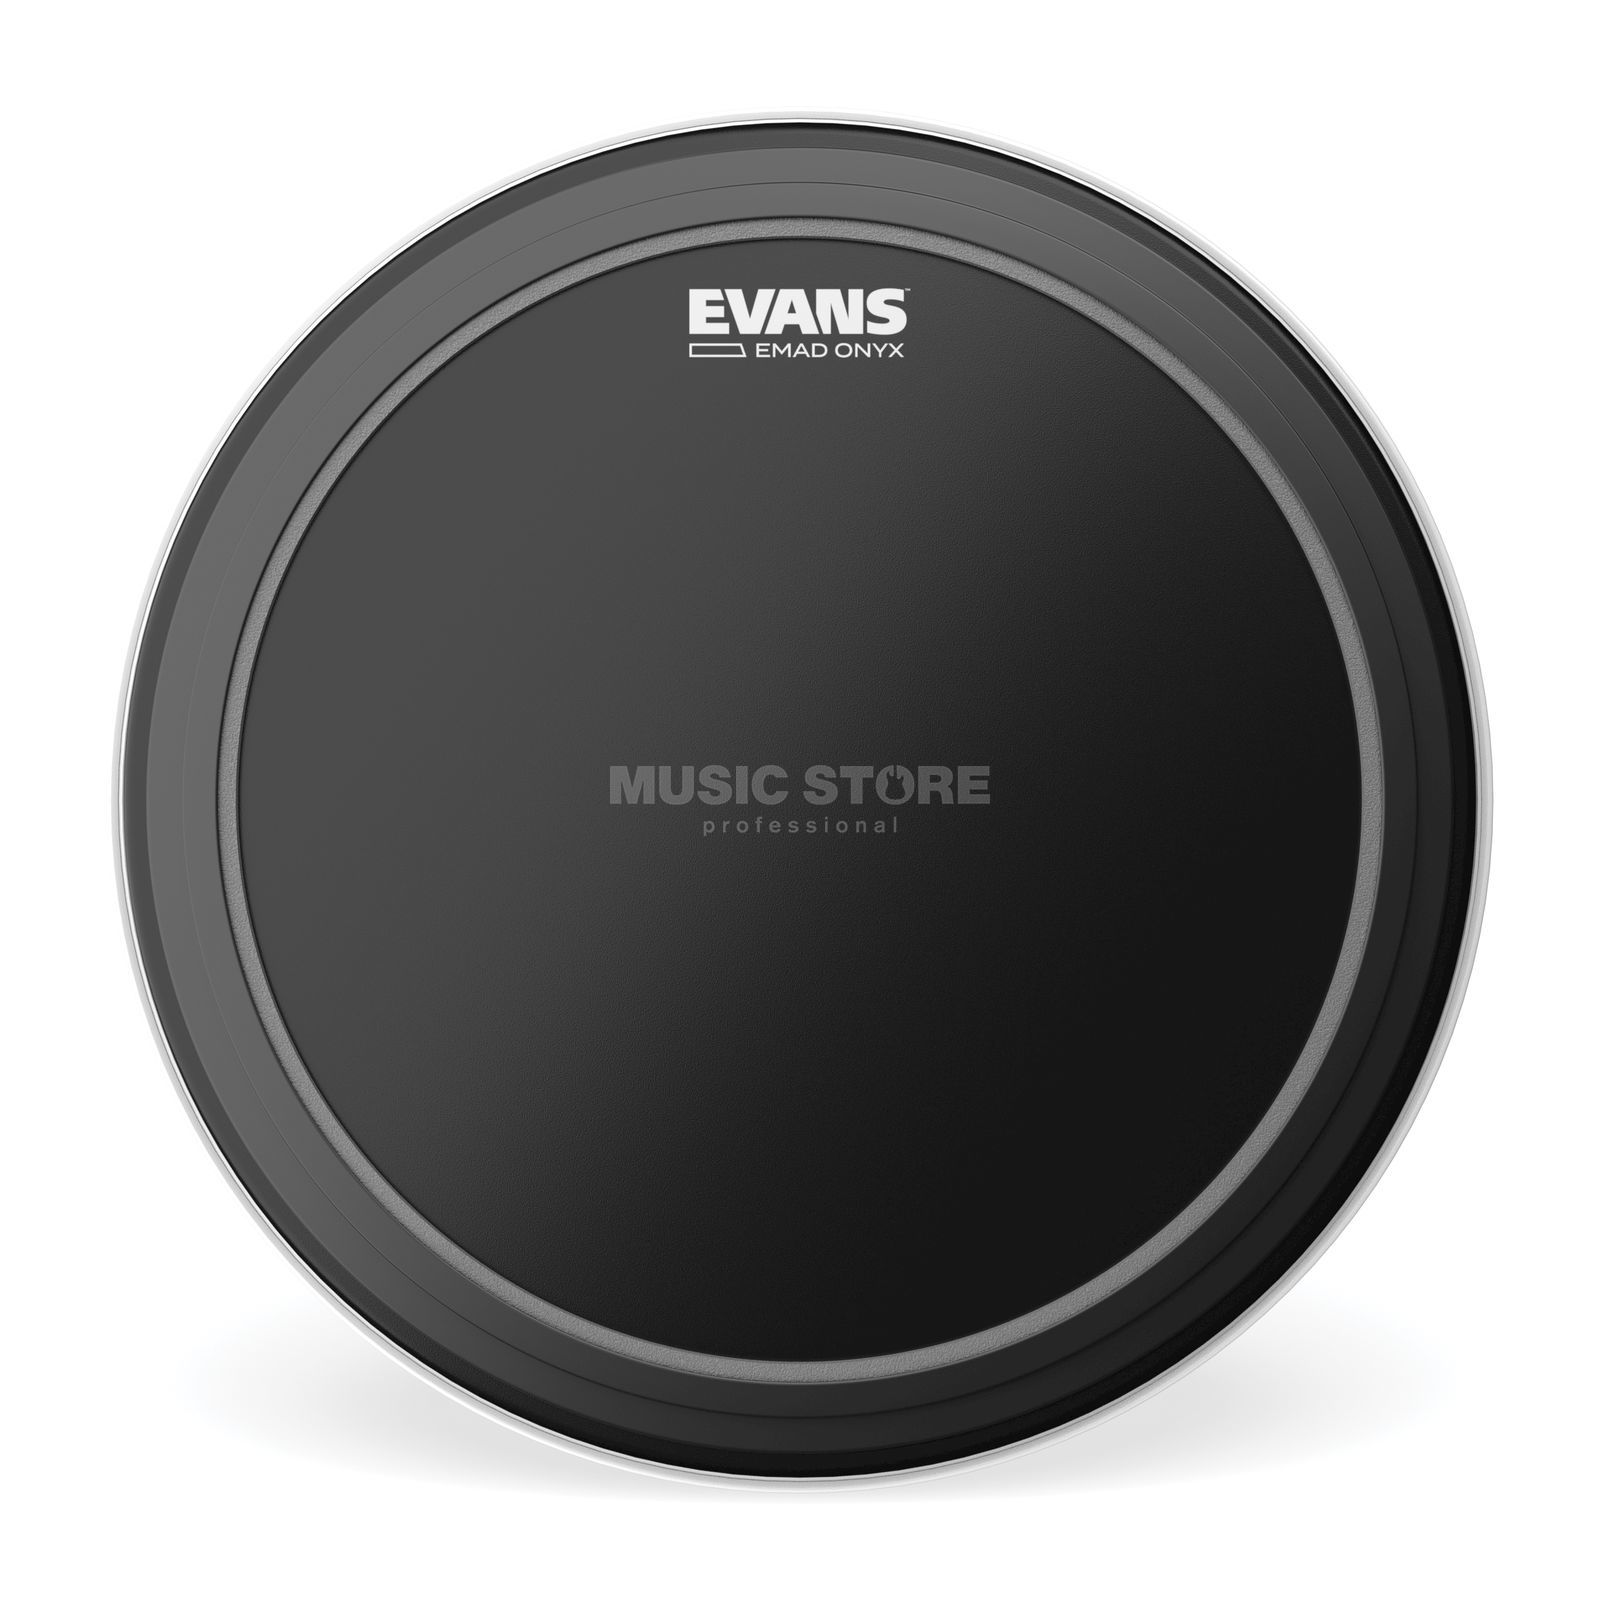 "Evans EMAD BlackOnyx 20"",BD20EMADONX Bass Drum Batter Product Image"